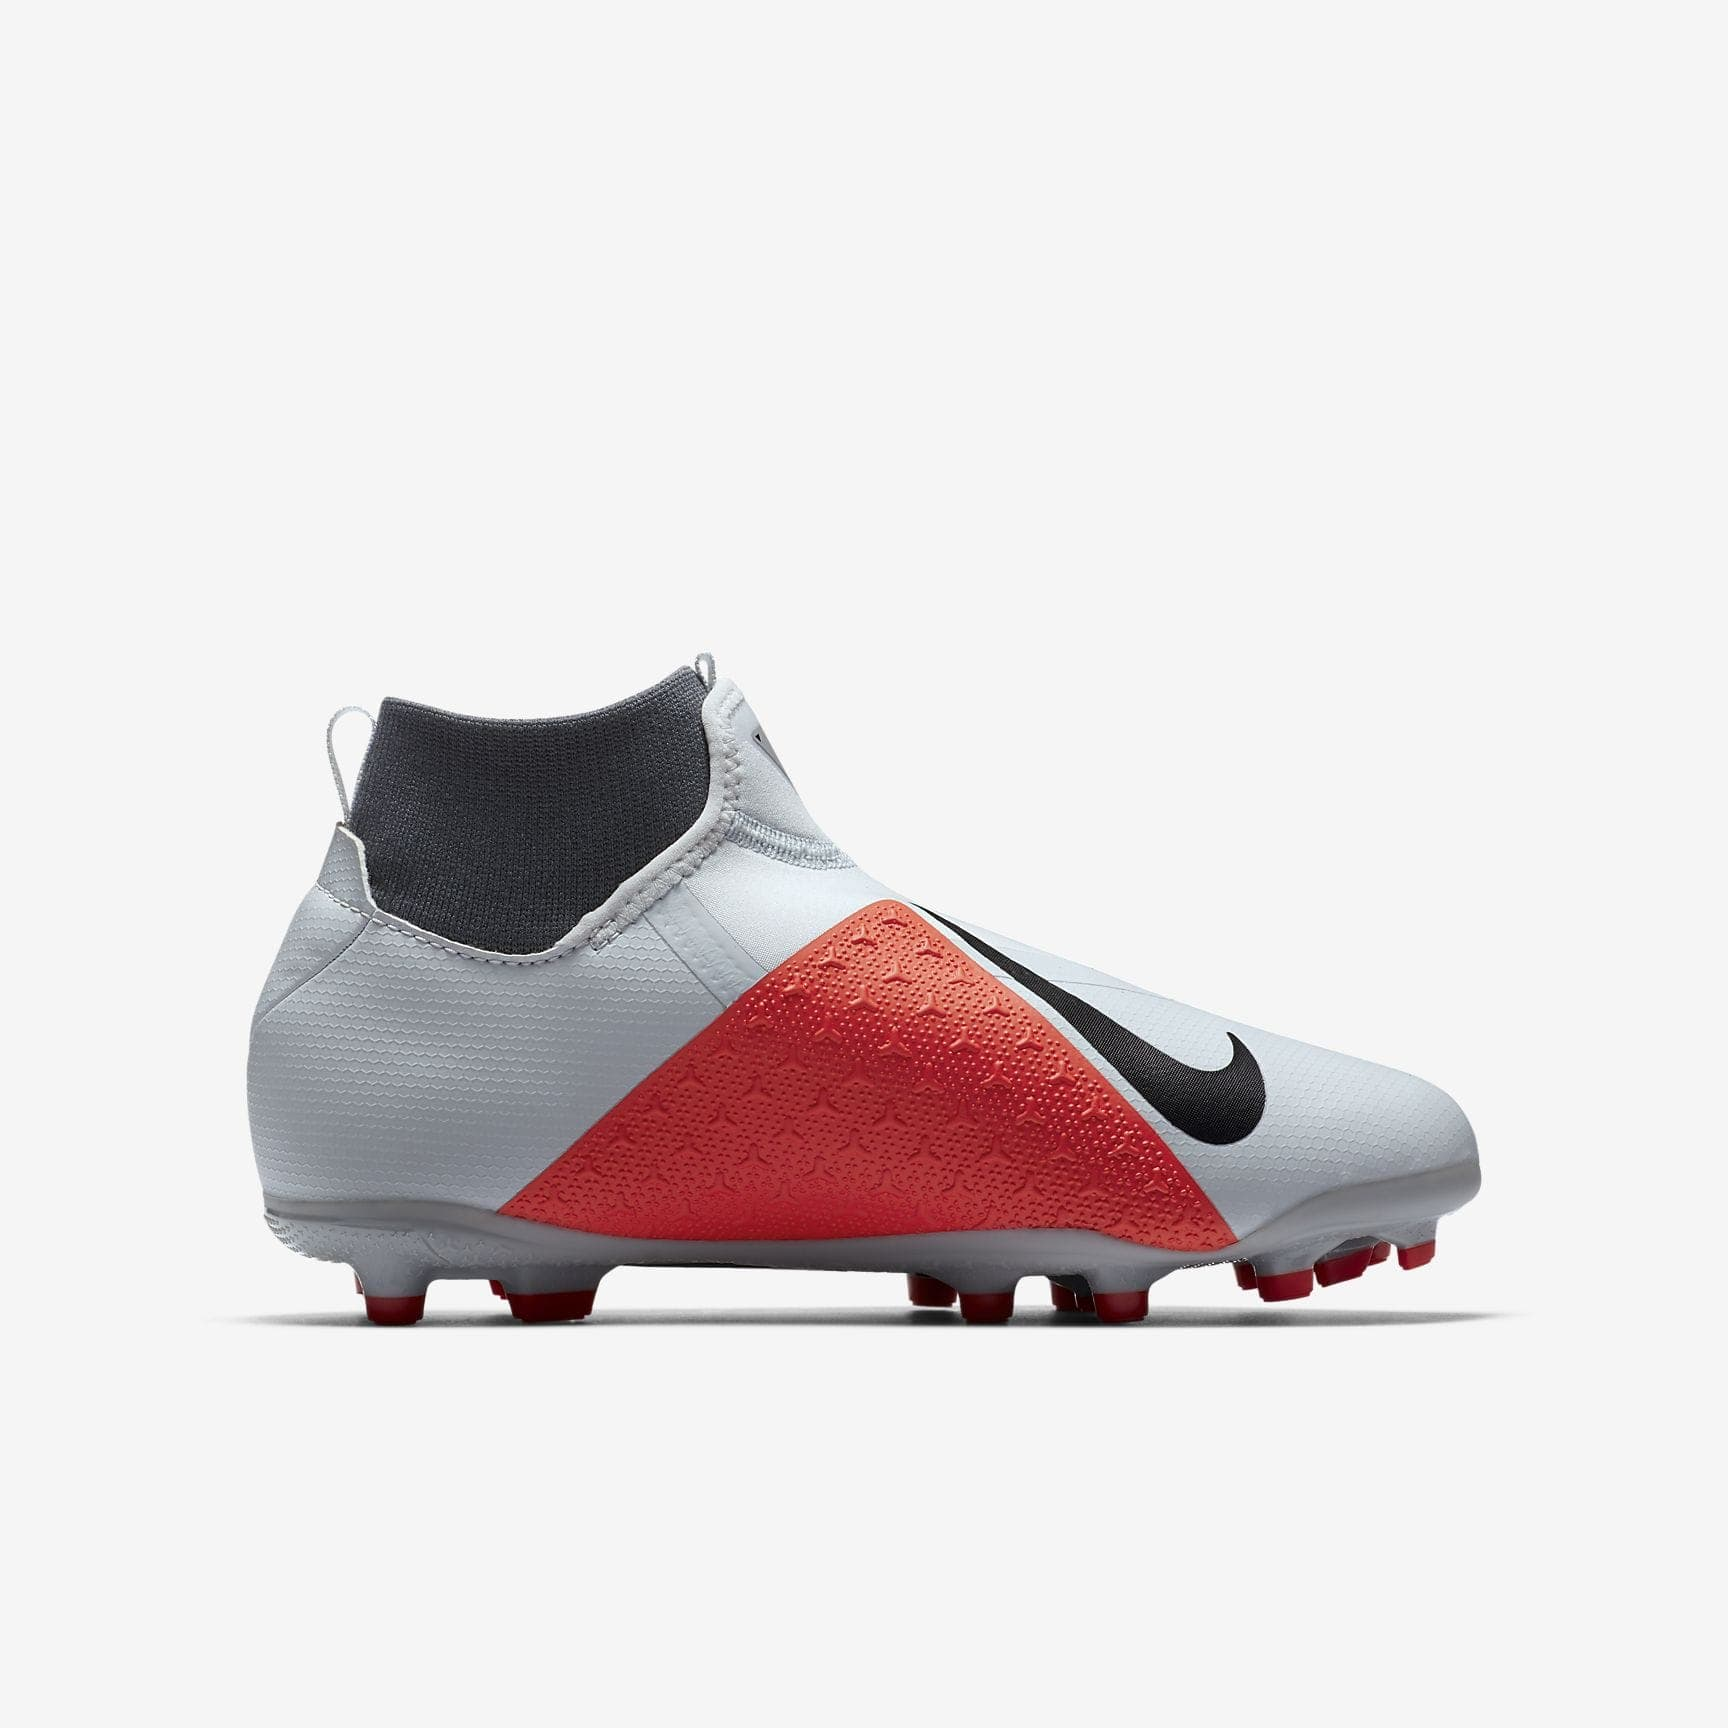 ae3952906c41 Купить Бутсы Nike Phantom Vsn Academy DF FG MG AO3287-060 JR в магазине  Goalcenter